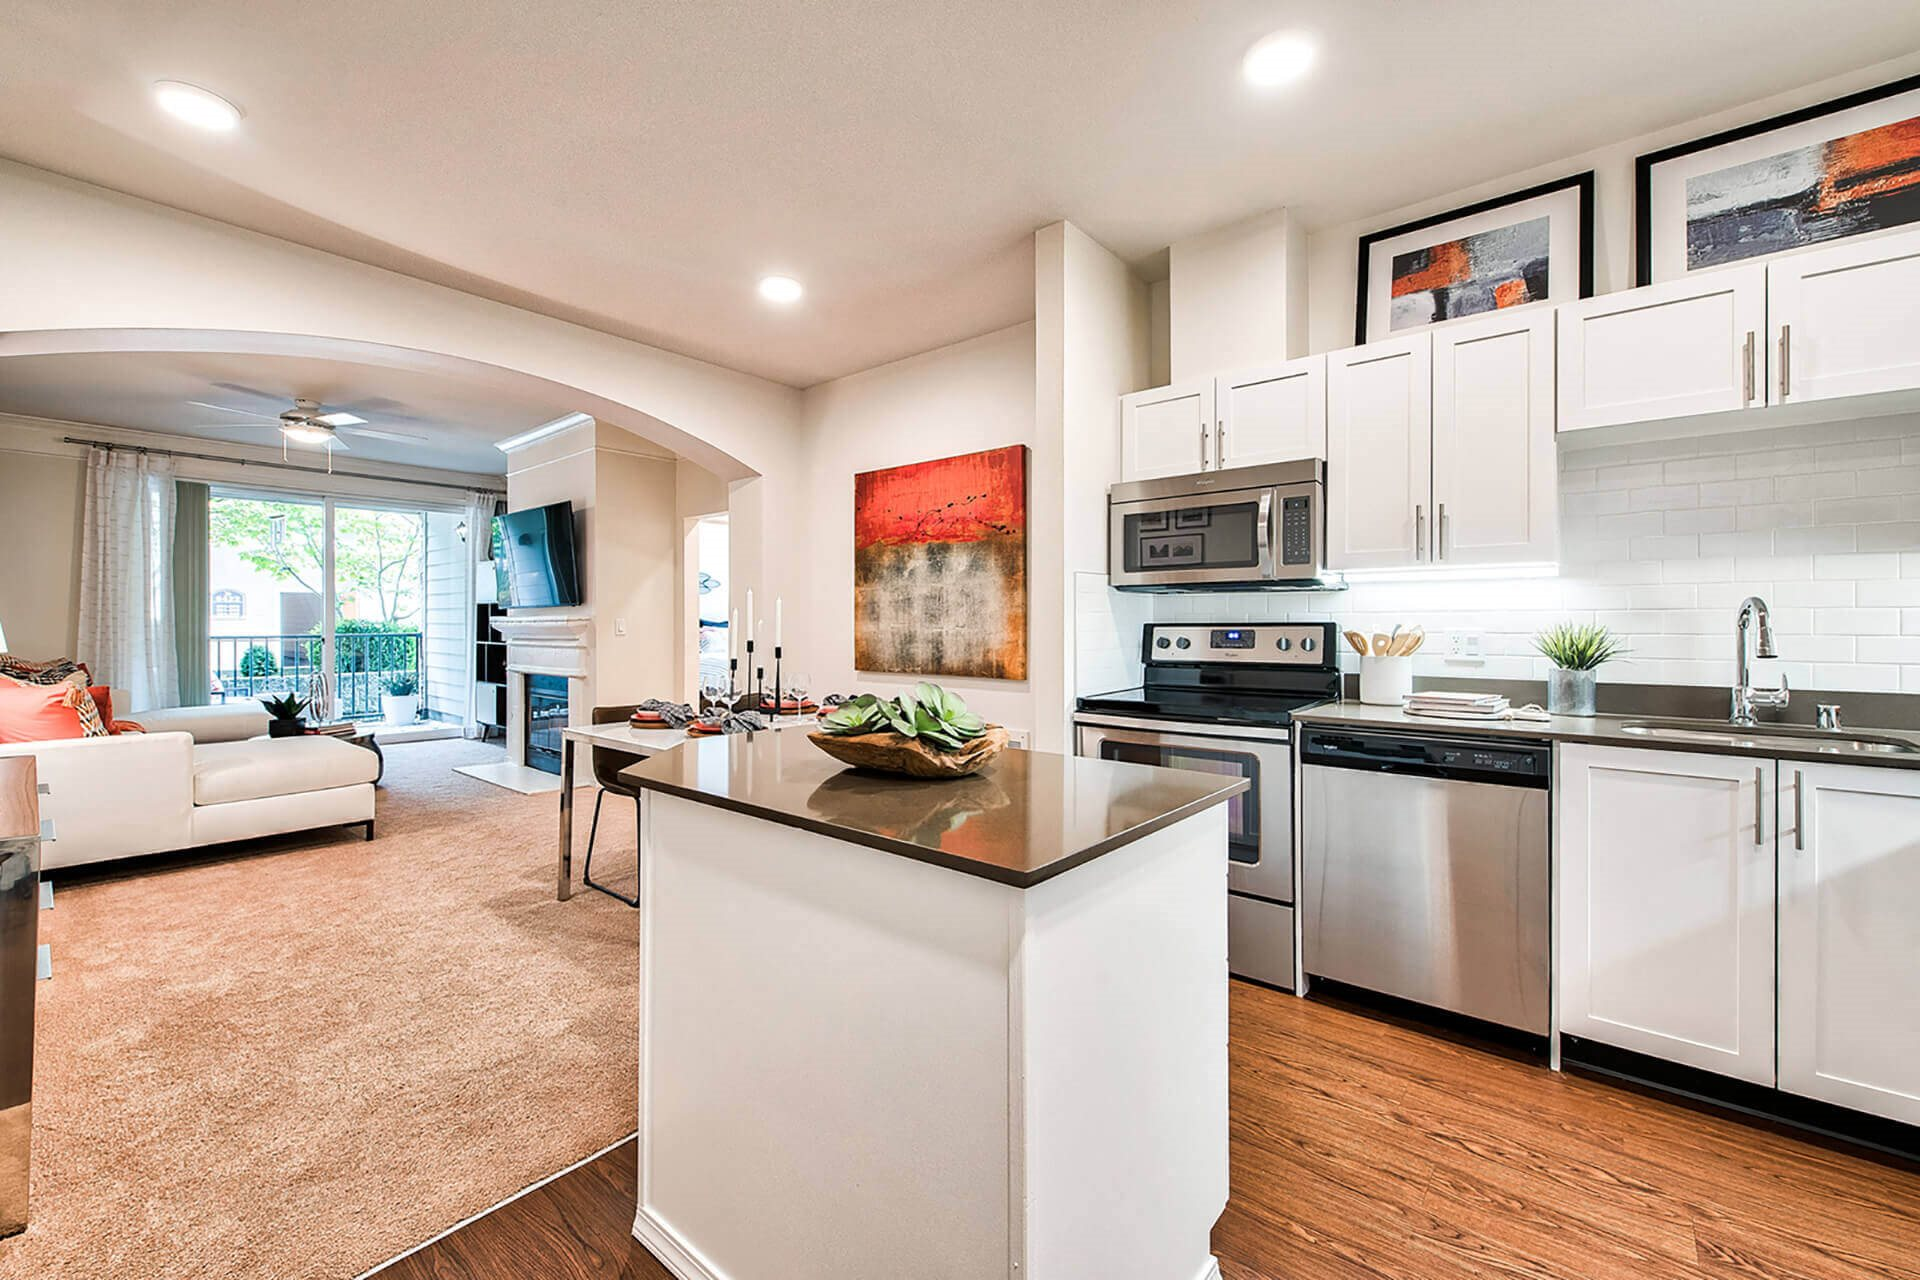 Modern Kitchen With Custom Cabinets And Stainless Steel Appliances at Reflections by Windsor, 98052, WA